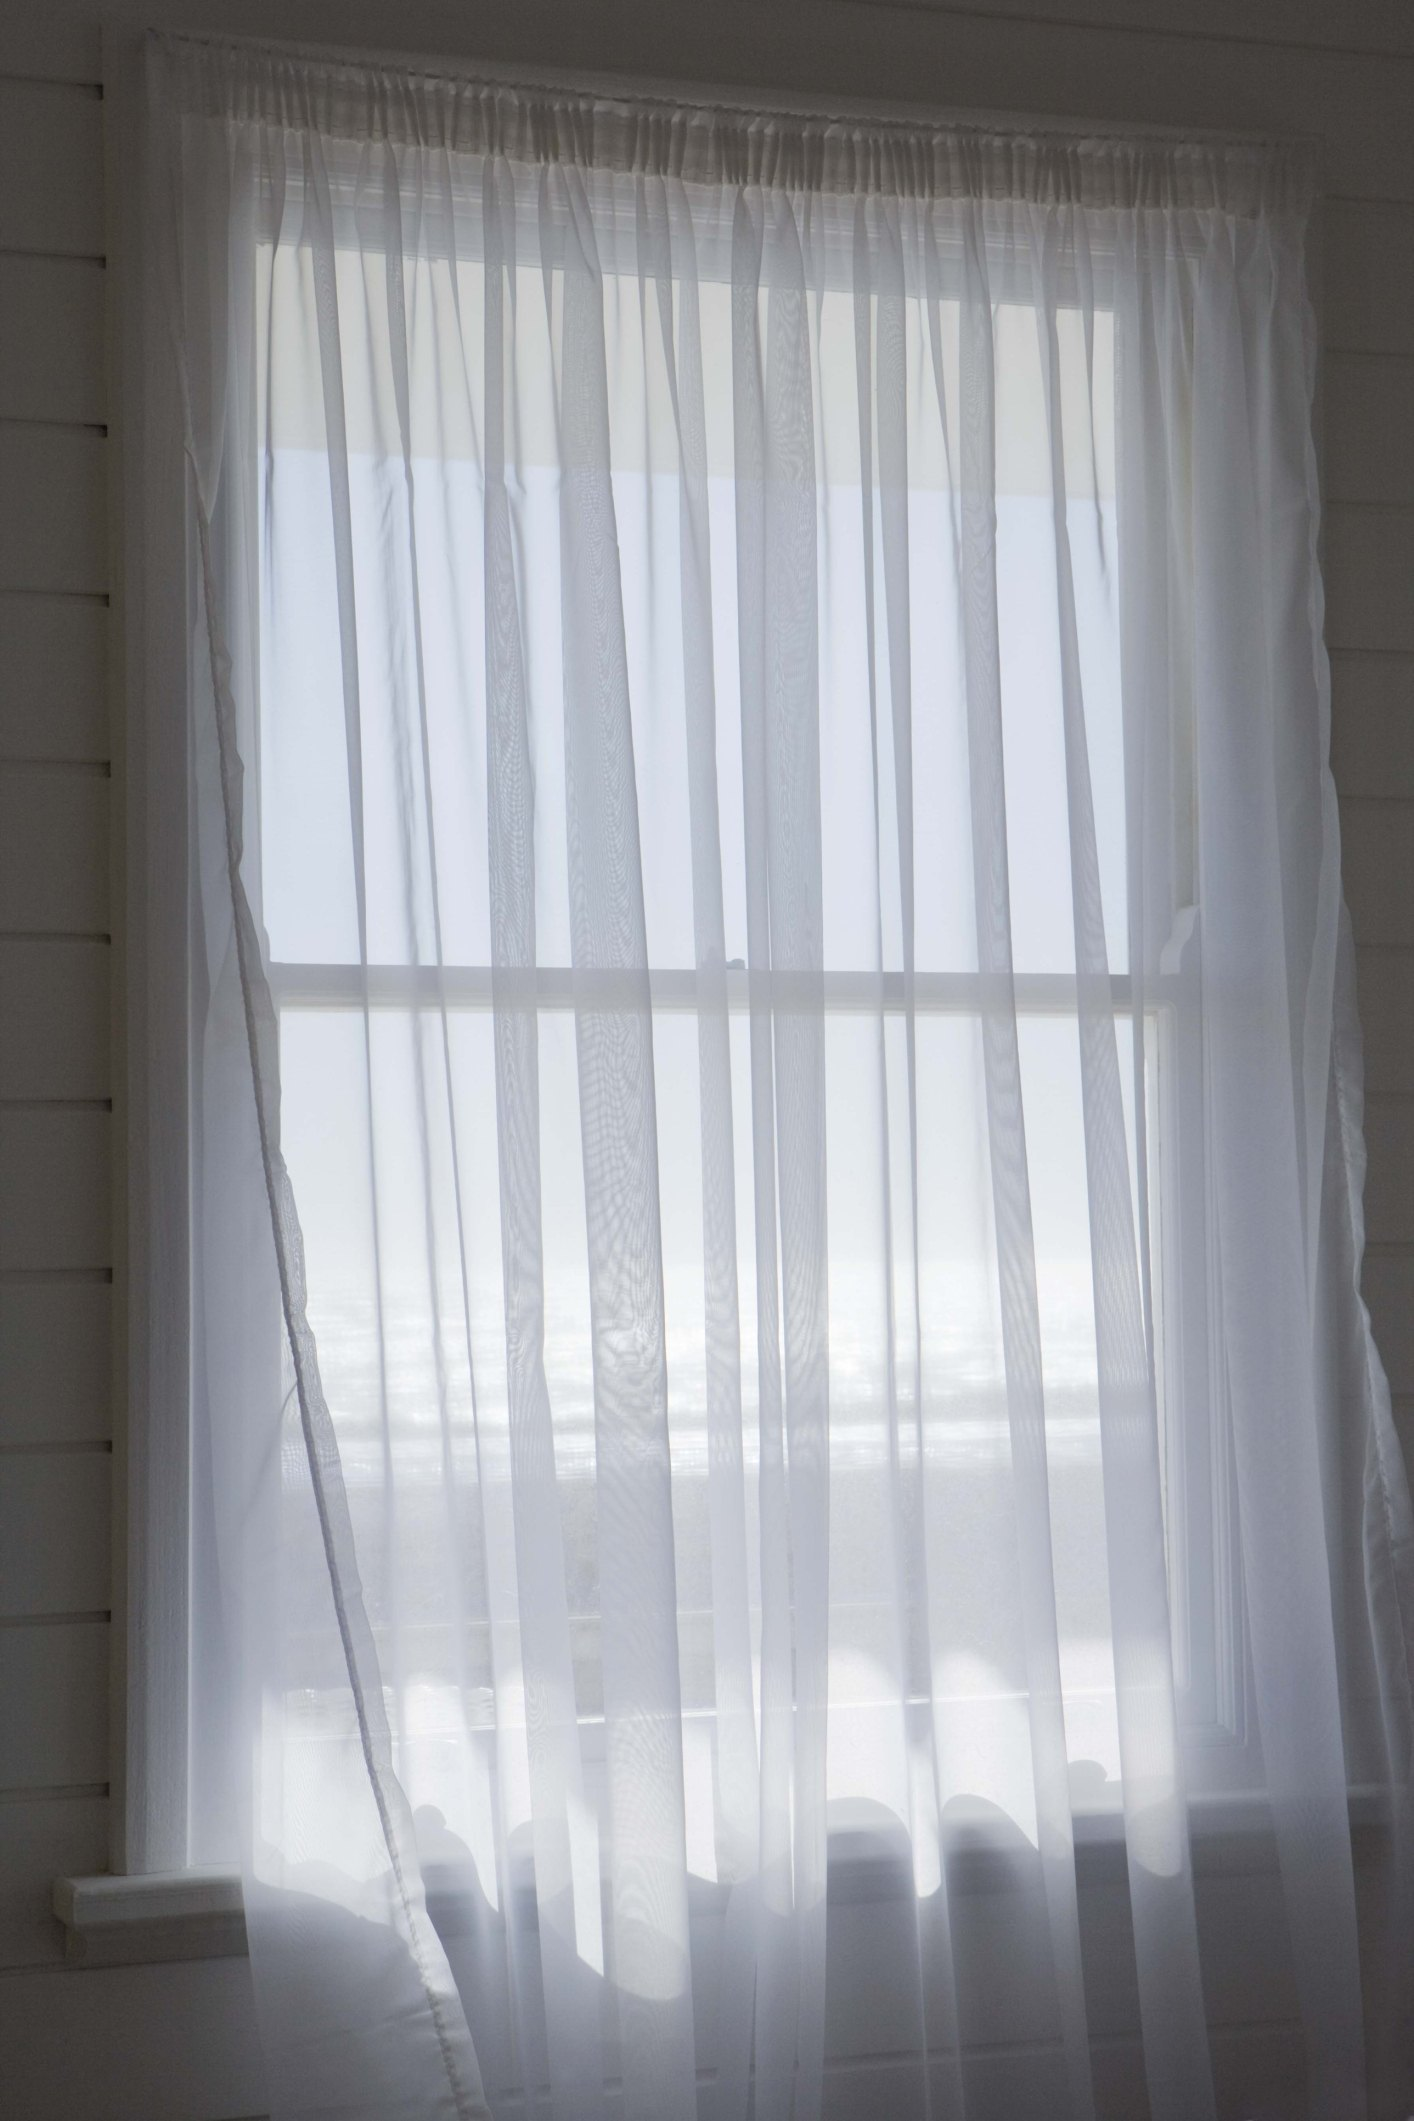 How To Make Window Curtains Out Of Tulle Fabric Ehow